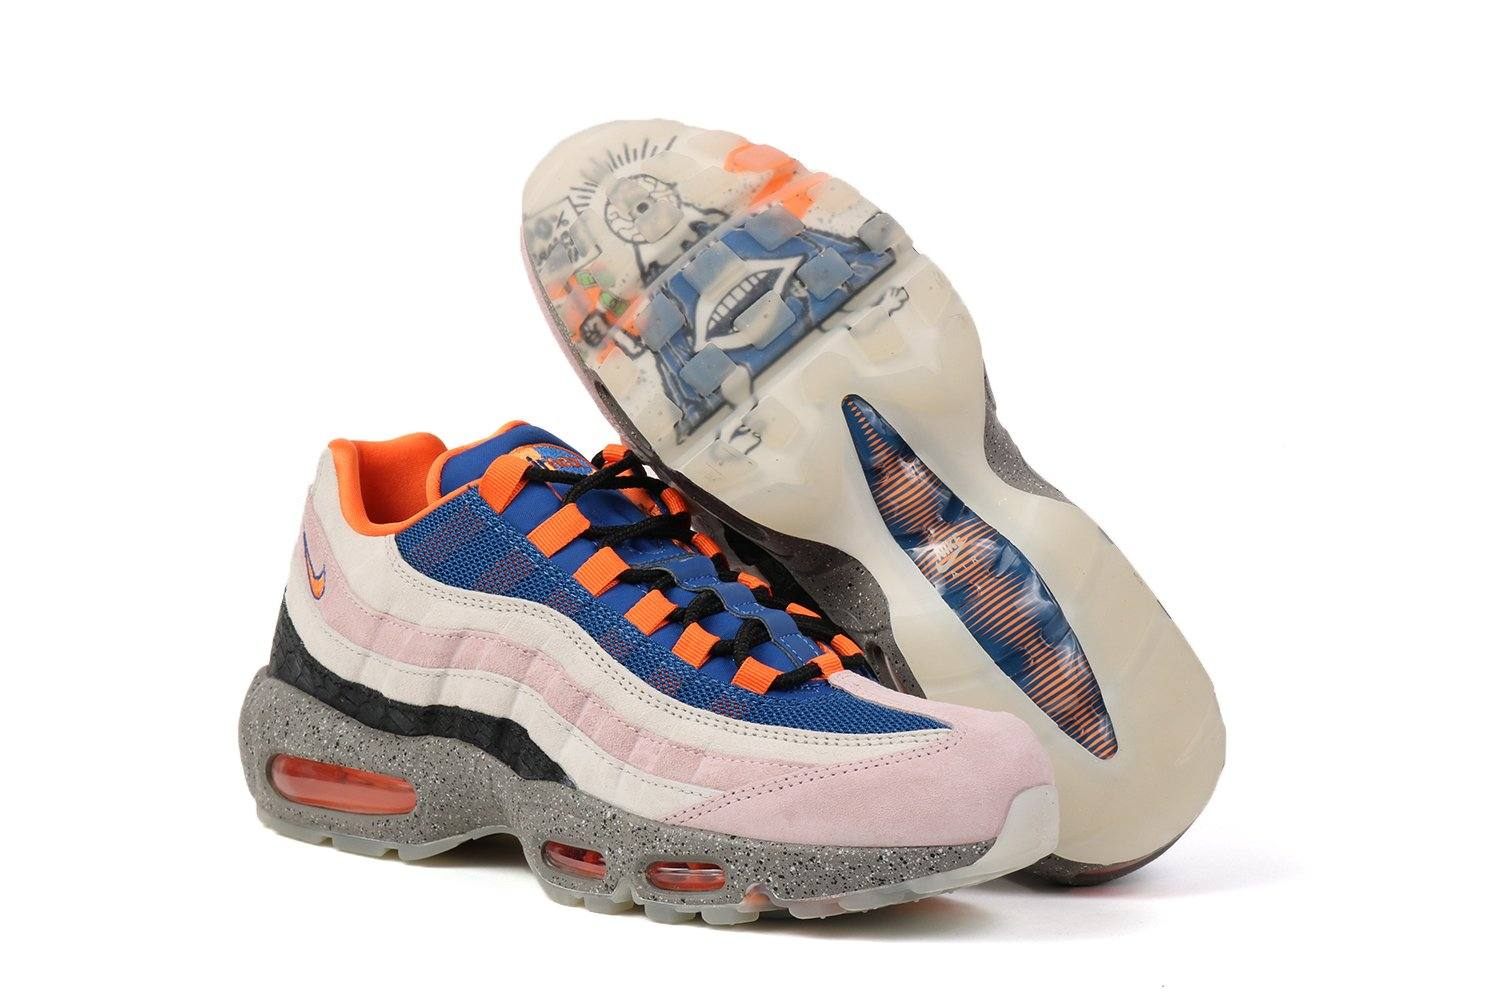 7bebc593f0 AIR MAX 95 - AV7014-600 MENS FOOTWEAR NIKE